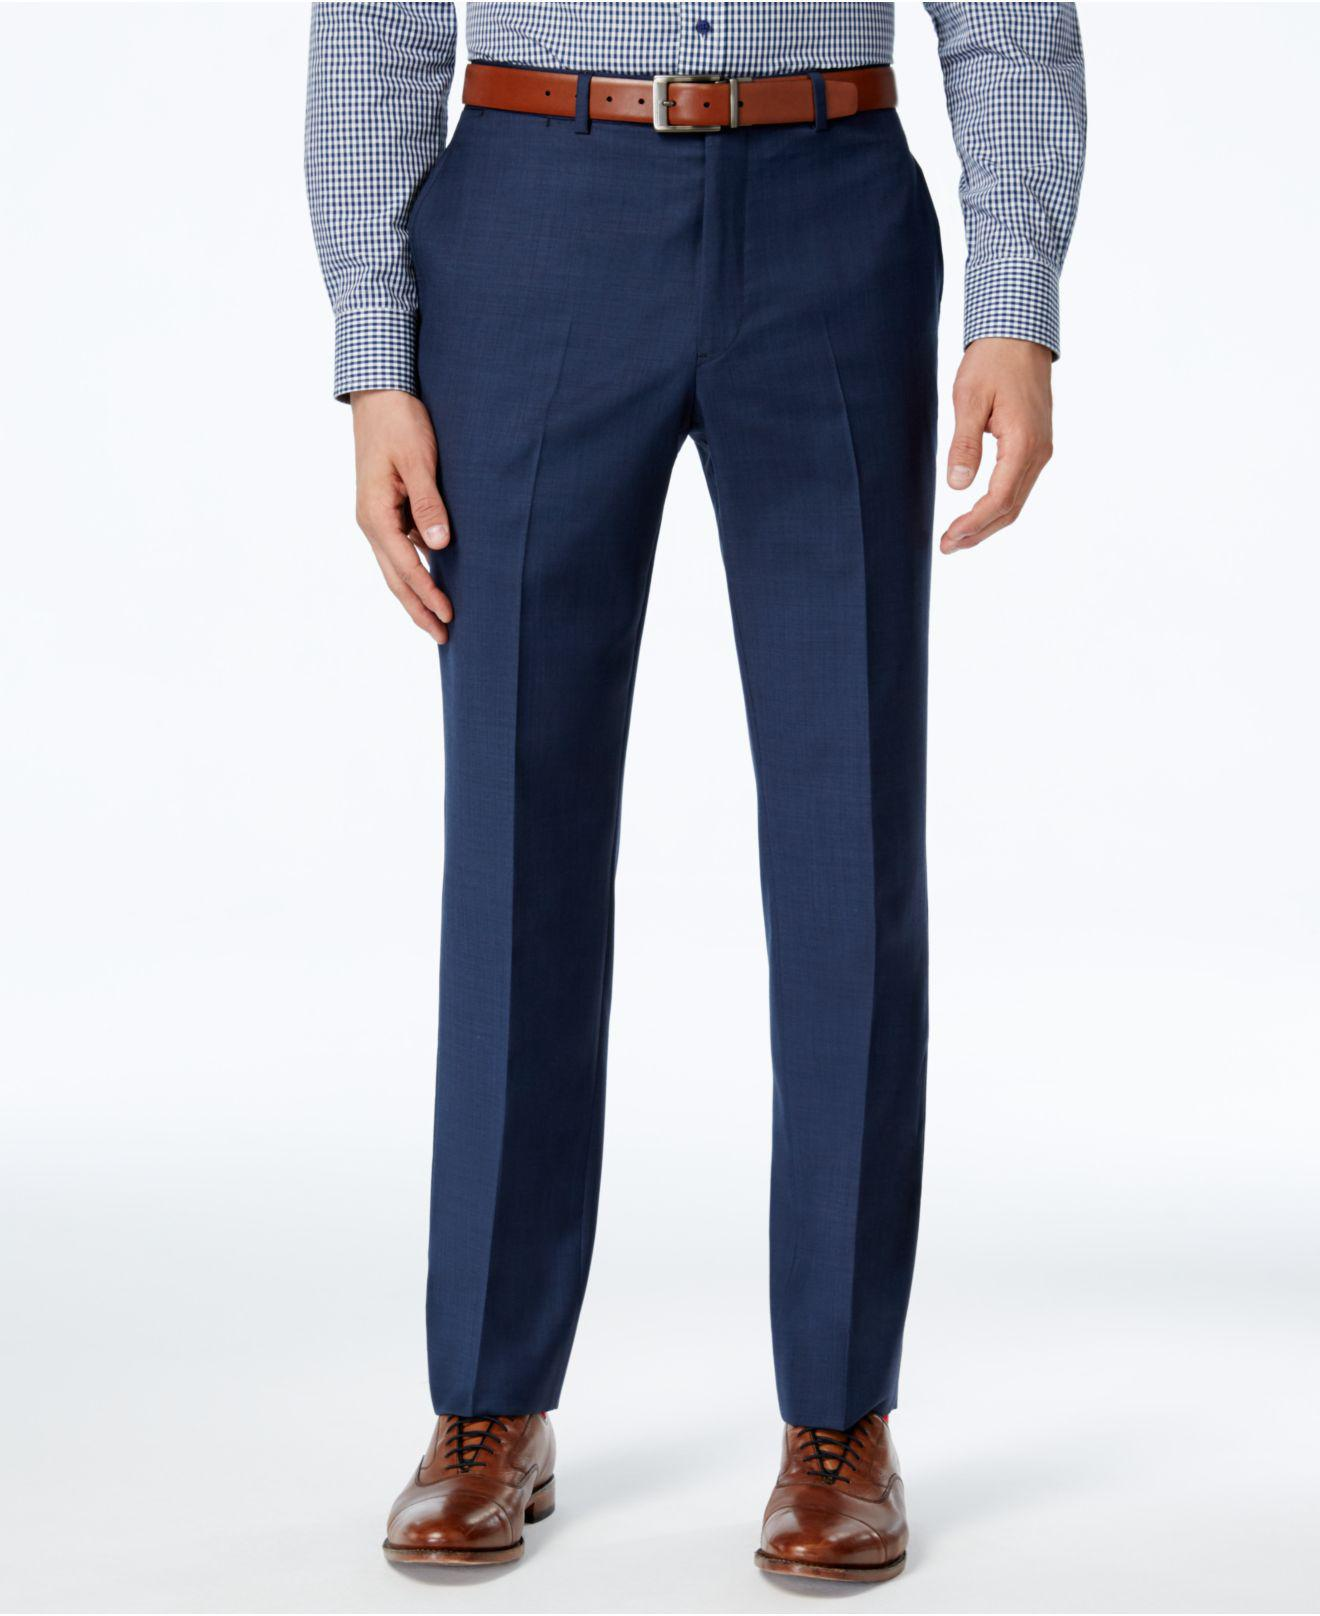 buying now excellent quality the best Pants, Navy Sharkskin Classic Fit